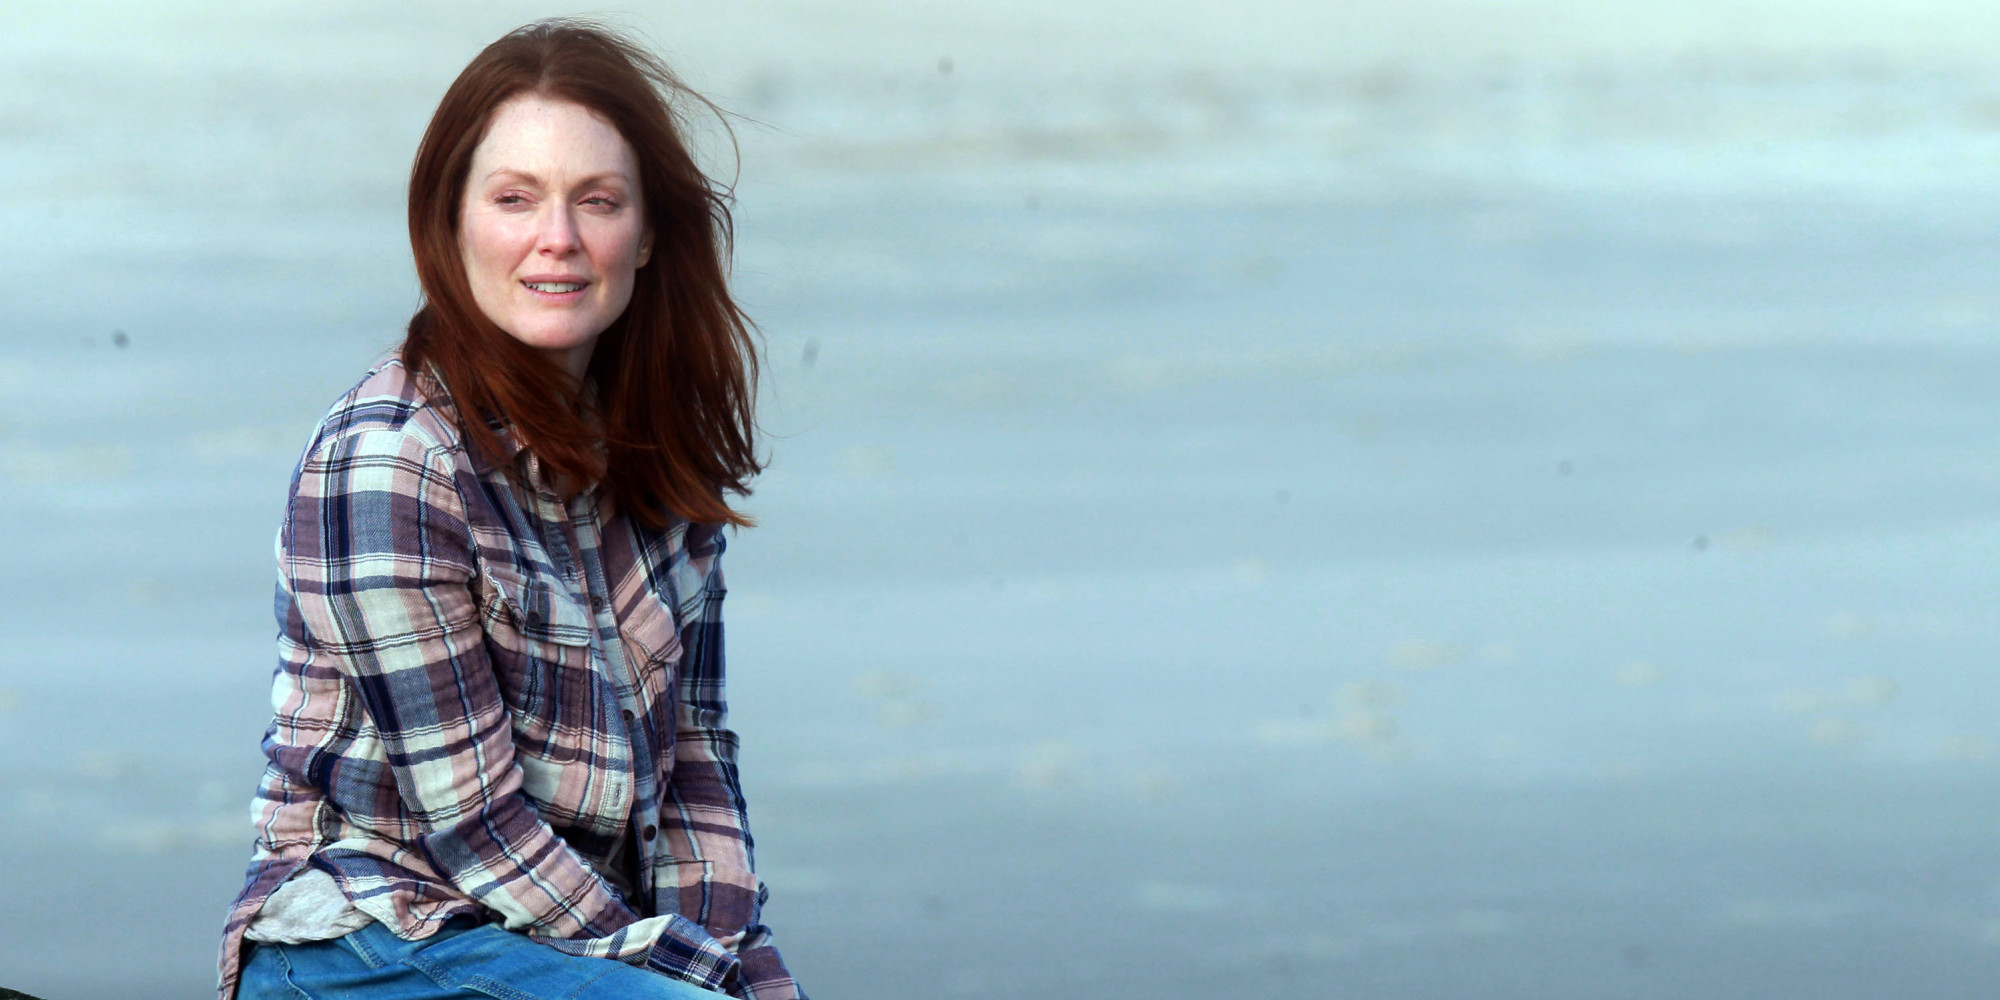 """NEW YORK, NY - MARCH 20:  Julianne Moore filming """"Still Alice"""" on March 20, 2014 in Long Island, New York.  (Steve Sands/GC Images)"""